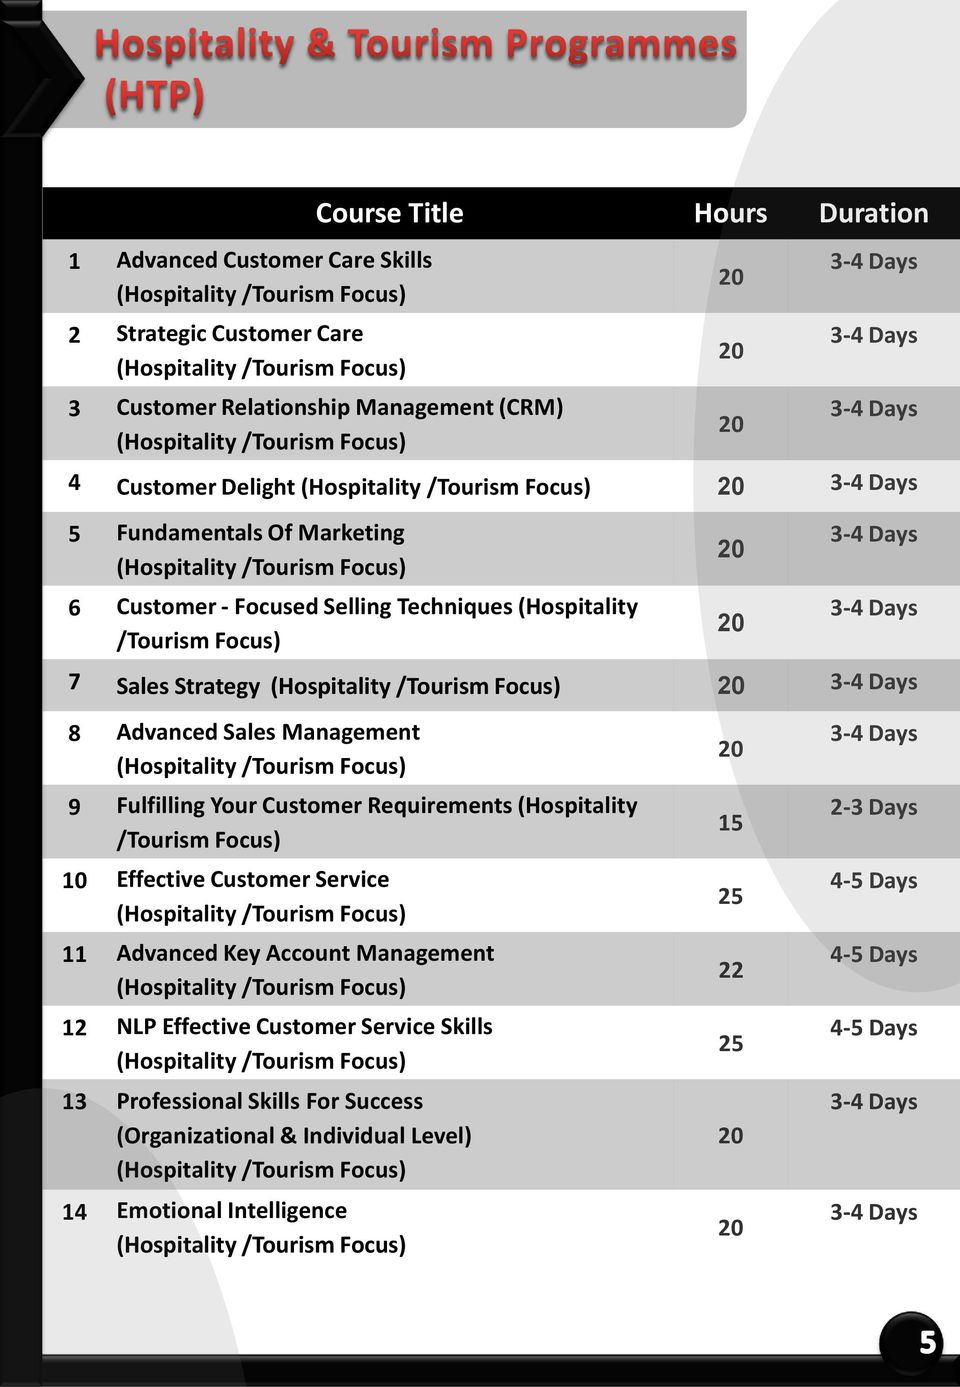 Strategy (Hospitality /Tourism Focus) 8 Advanced Sales Management (Hospitality /Tourism Focus) 9 Fulfilling Your Customer Requirements (Hospitality /Tourism Focus) 10 Effective Customer Service